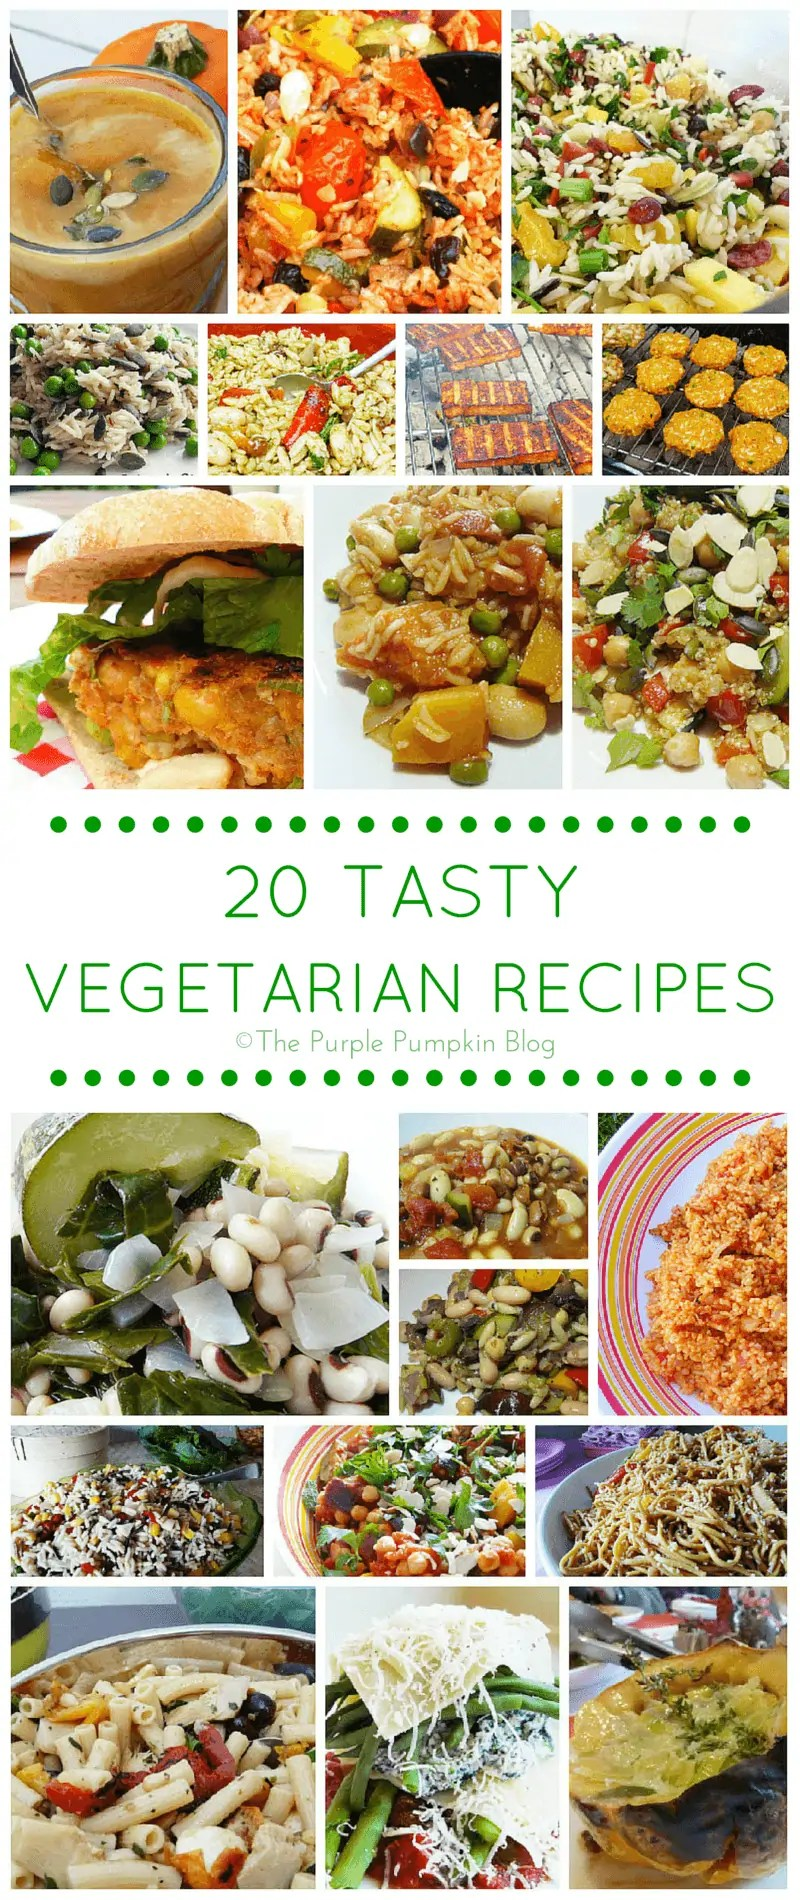 20 Tasty Vegetarian Recipes